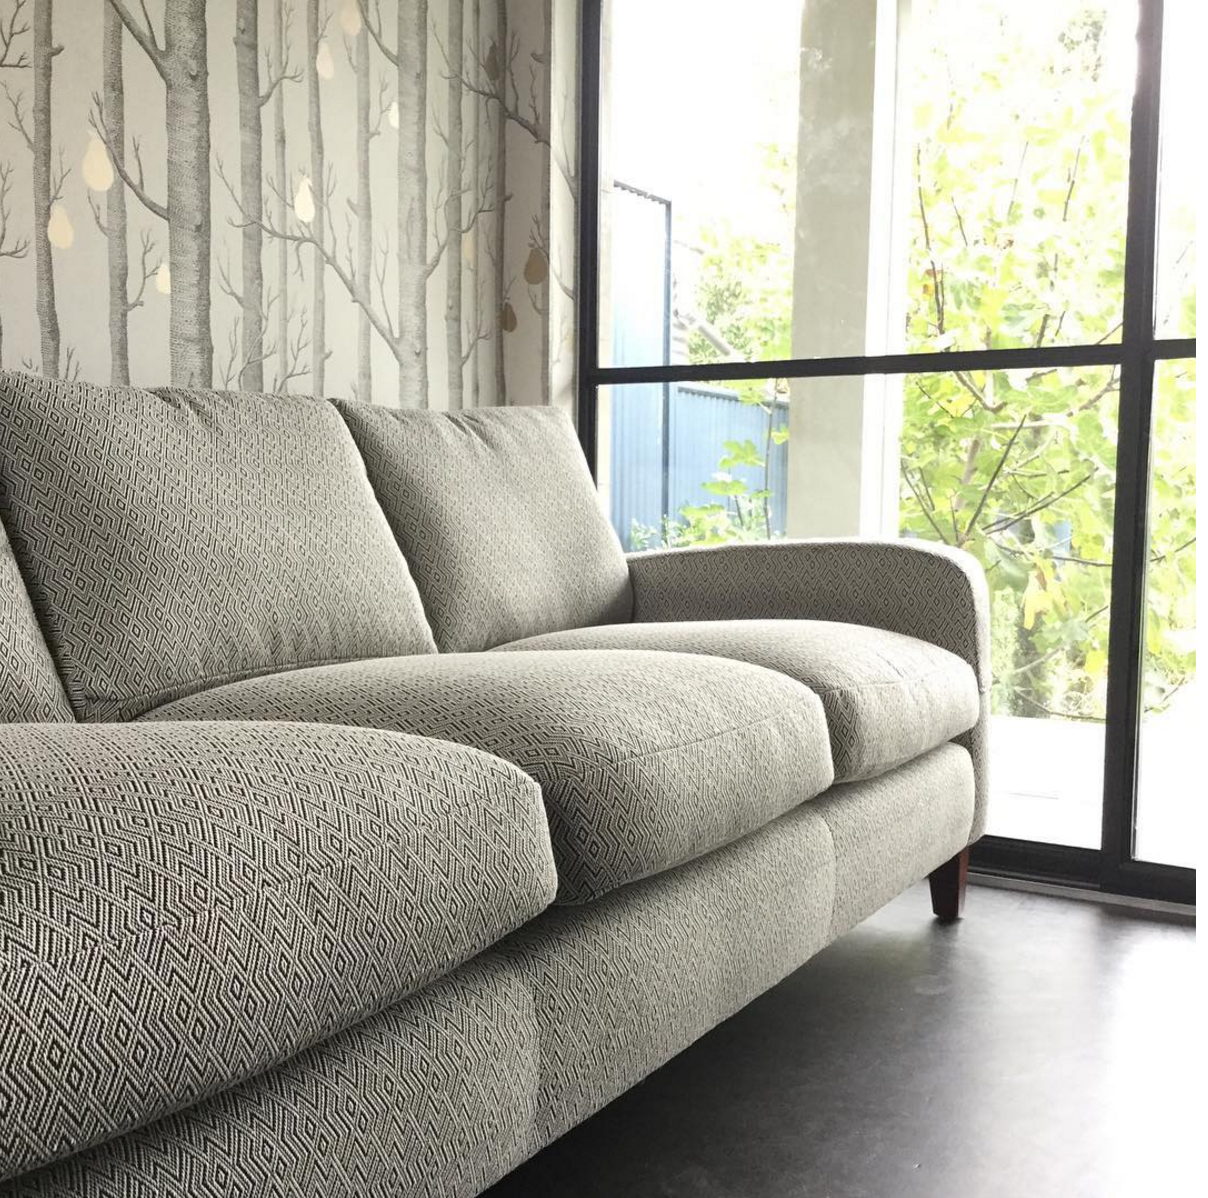 reupholster sofa south london small one person adelaide villa re upholstering when is it worth doing how much reupholstered in the kid s playroom jim thompson indoor outdoor fabric new springs and extra feather fill back cushions